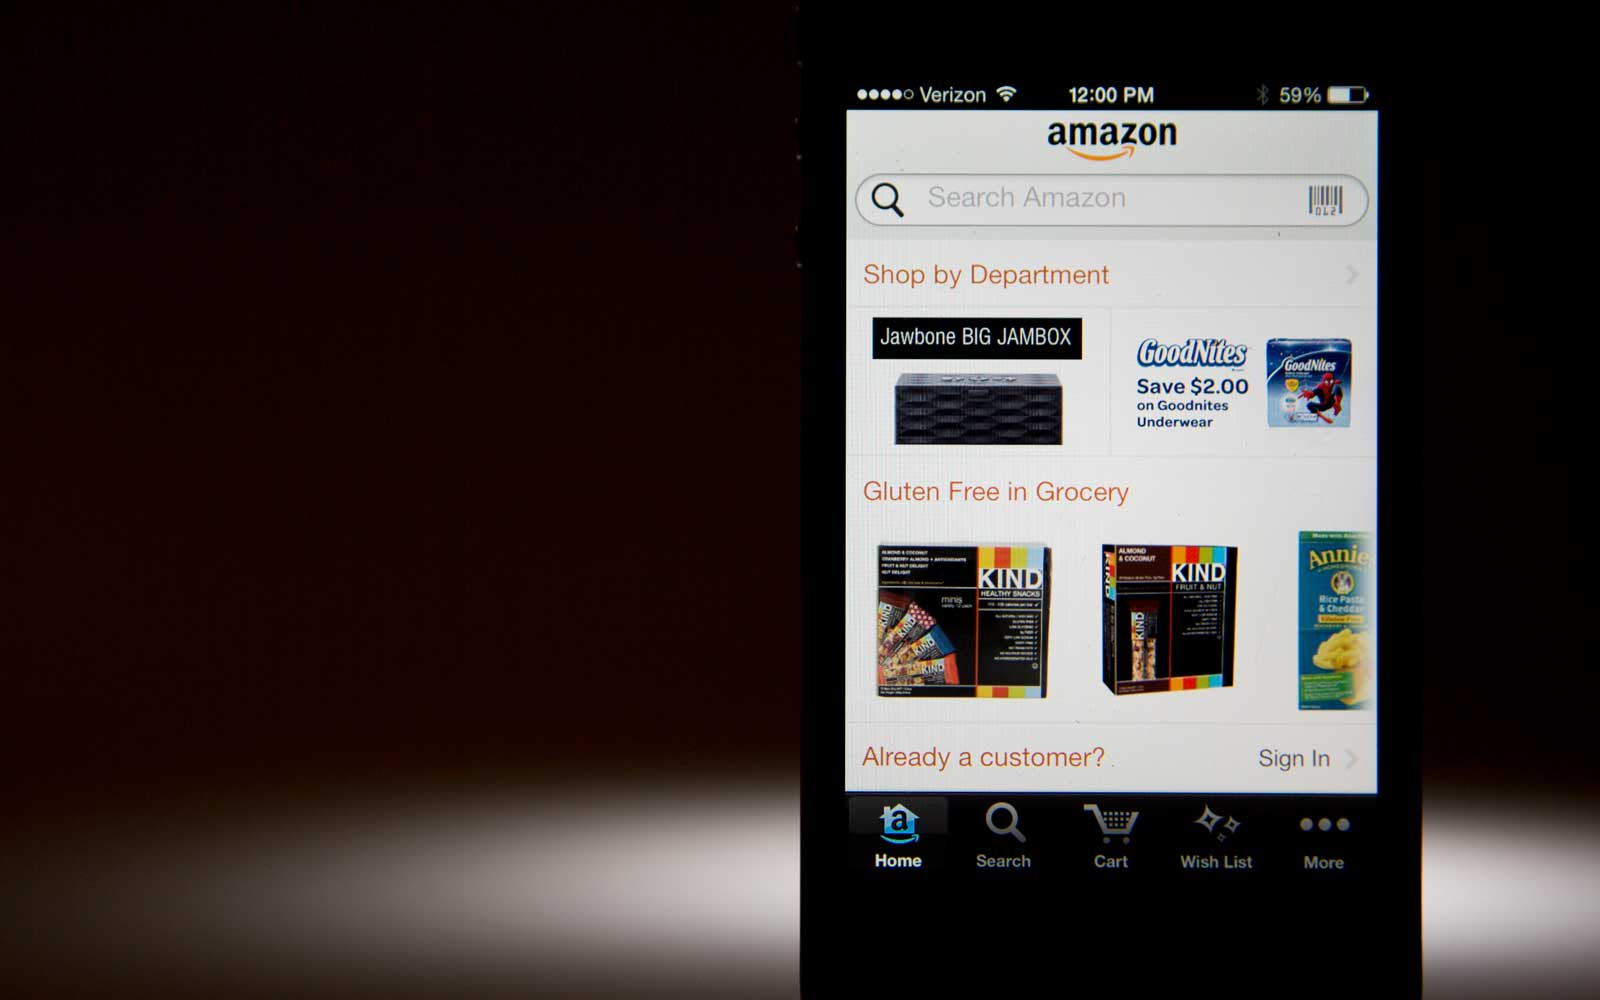 Amazon Is Running a Limited Time Coupon Code to Thank Customers